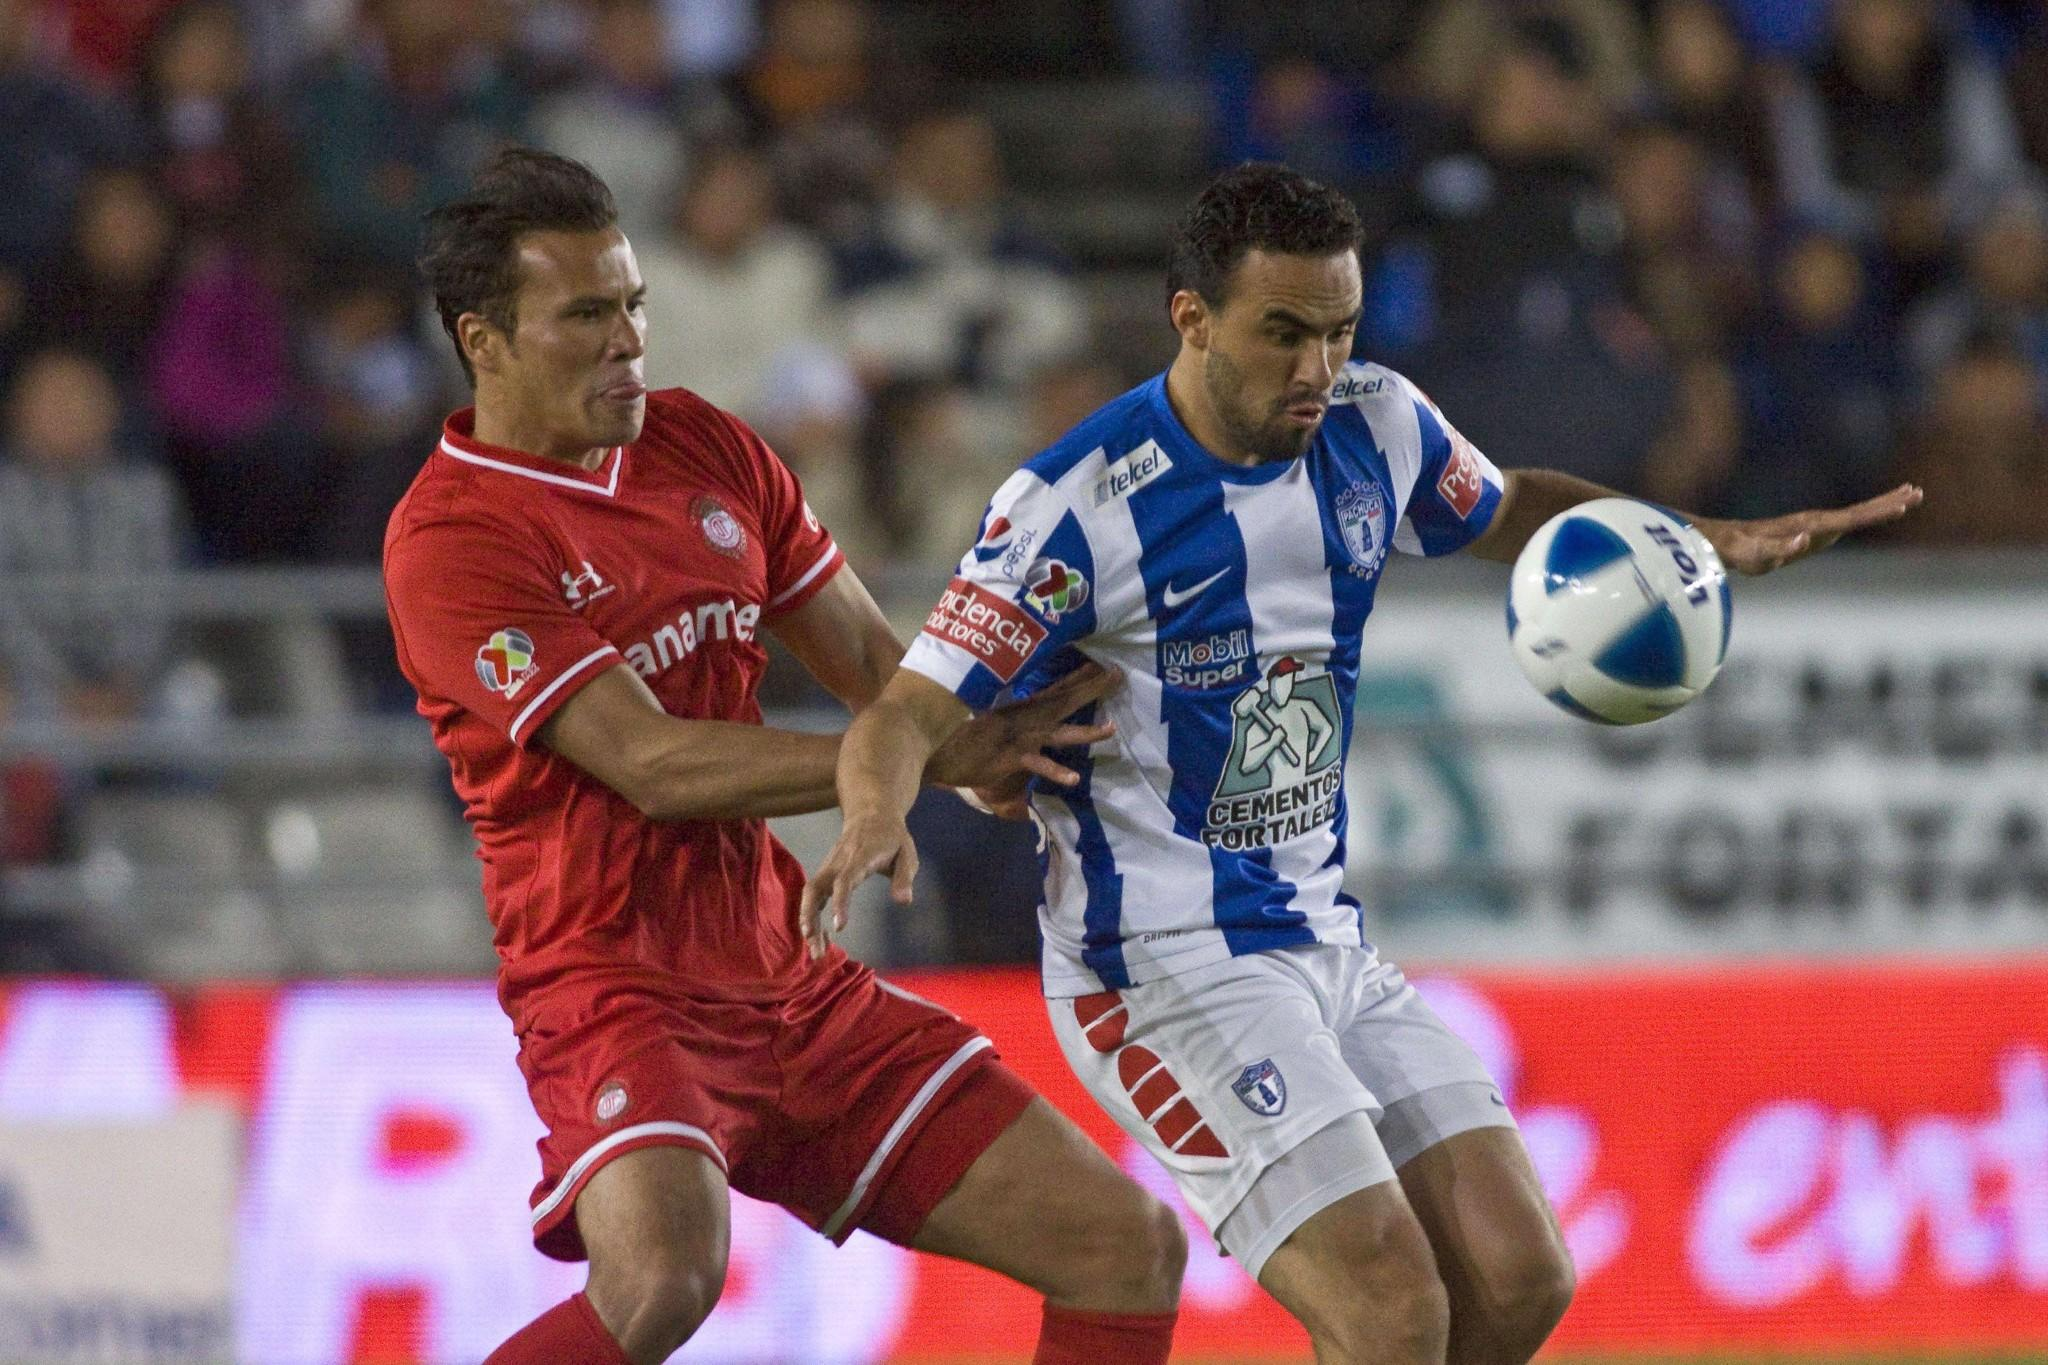 Enrique Esqueda (R) of Pachuca vies for the ball with Aaron Galindo (L) of Toluca during their Mexican Soccer Clausura 2014 tournament in Pachuca, State of Hidalgo, Mexico, on January 04, 2014.